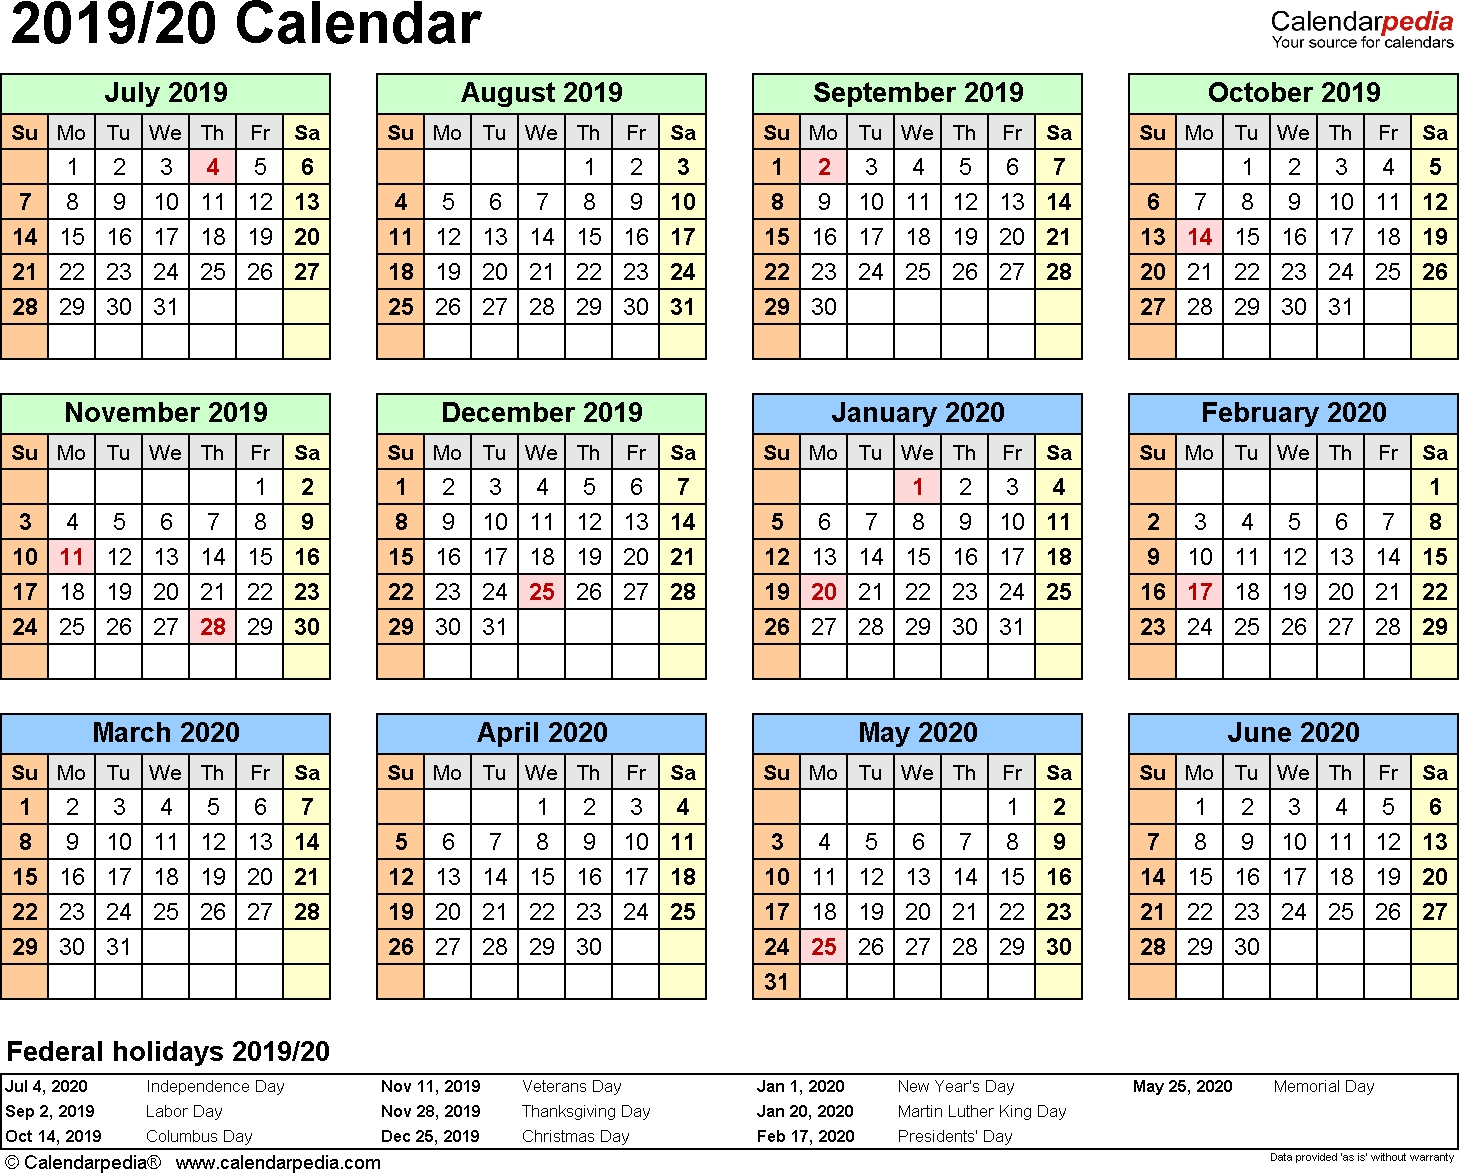 Split Year Calendar 2019/20 (July To June) - Excel Templates with regard to Macs 2019-2020 Calendar